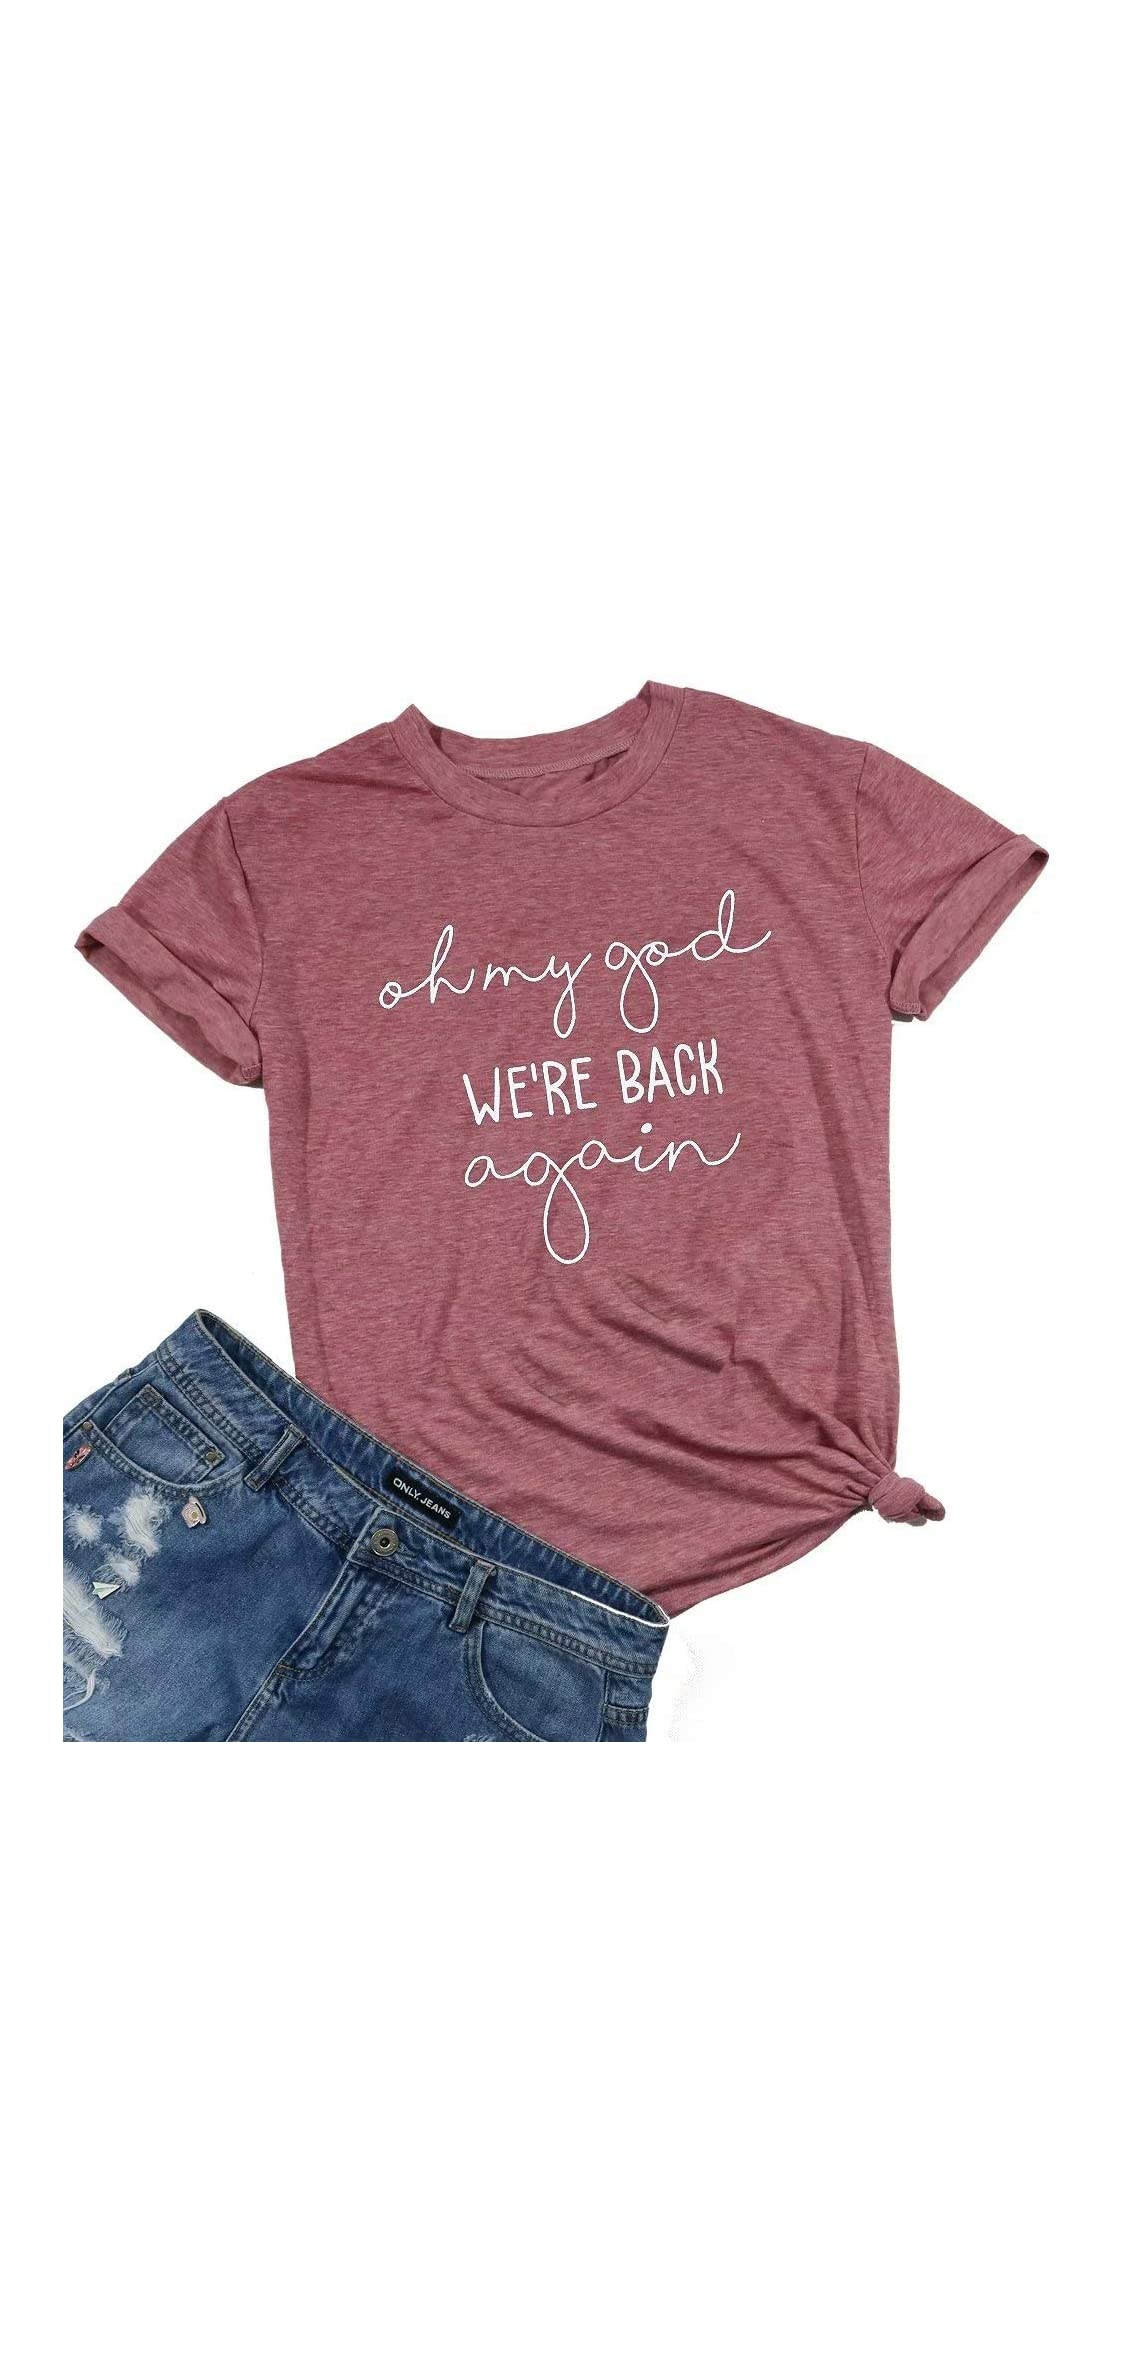 Oh My God We're Back Again Shirt Concert Band Tee Shirts For Tee